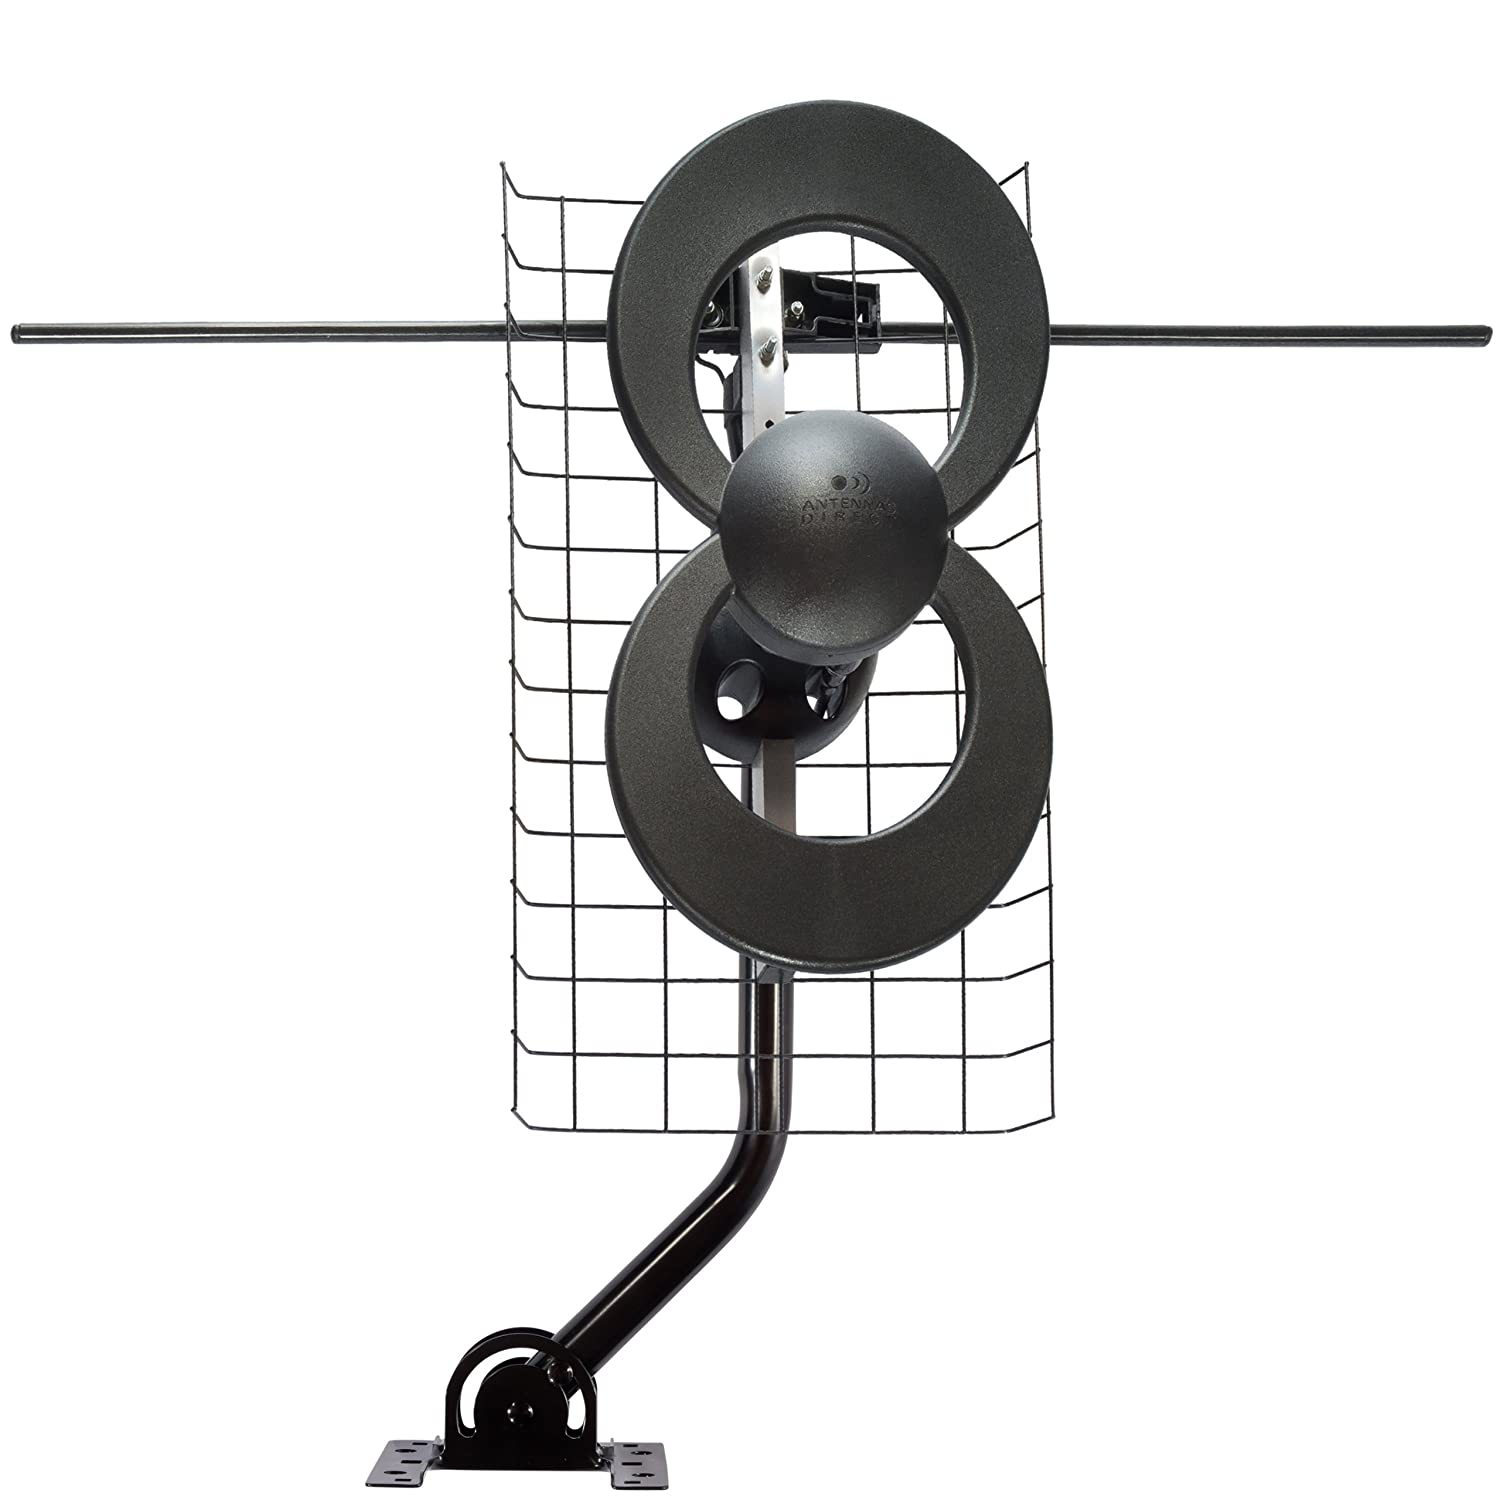 Antennas Direct ClearStream 2V Long Range TV Outdoor Antenna C2 V CJM | eBay